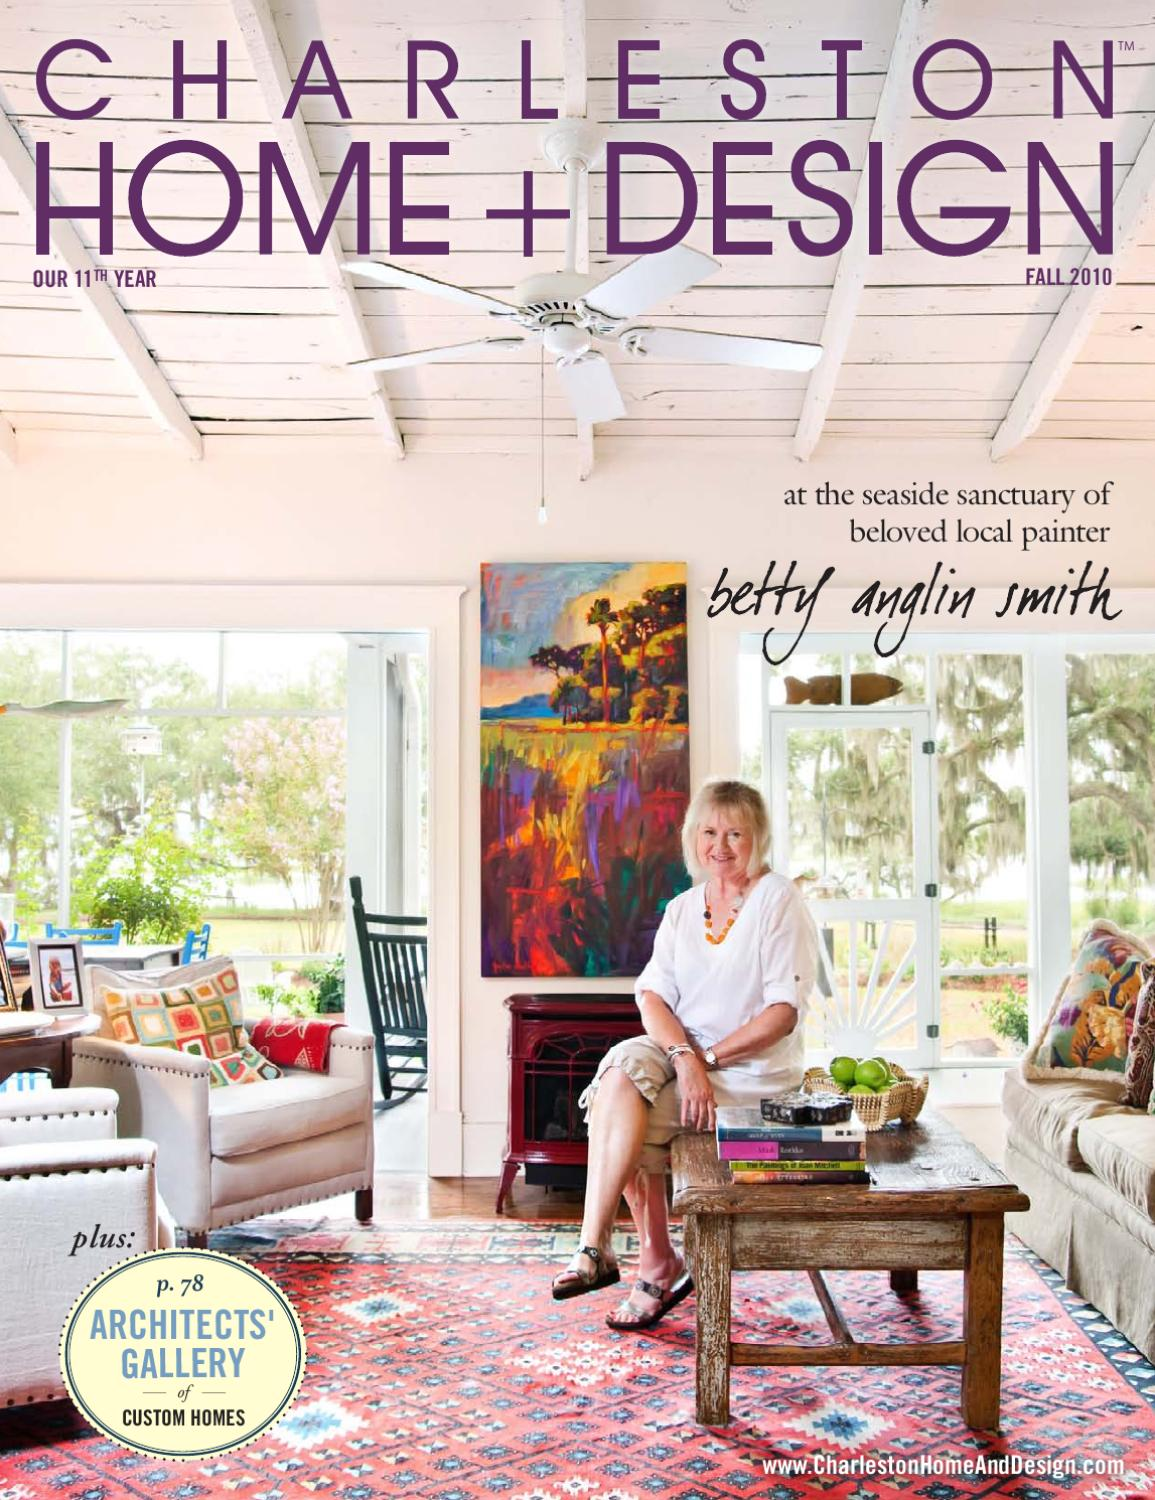 Issuu Charleston Home Design Fall 2010 By Charleston Home And Design Magazine